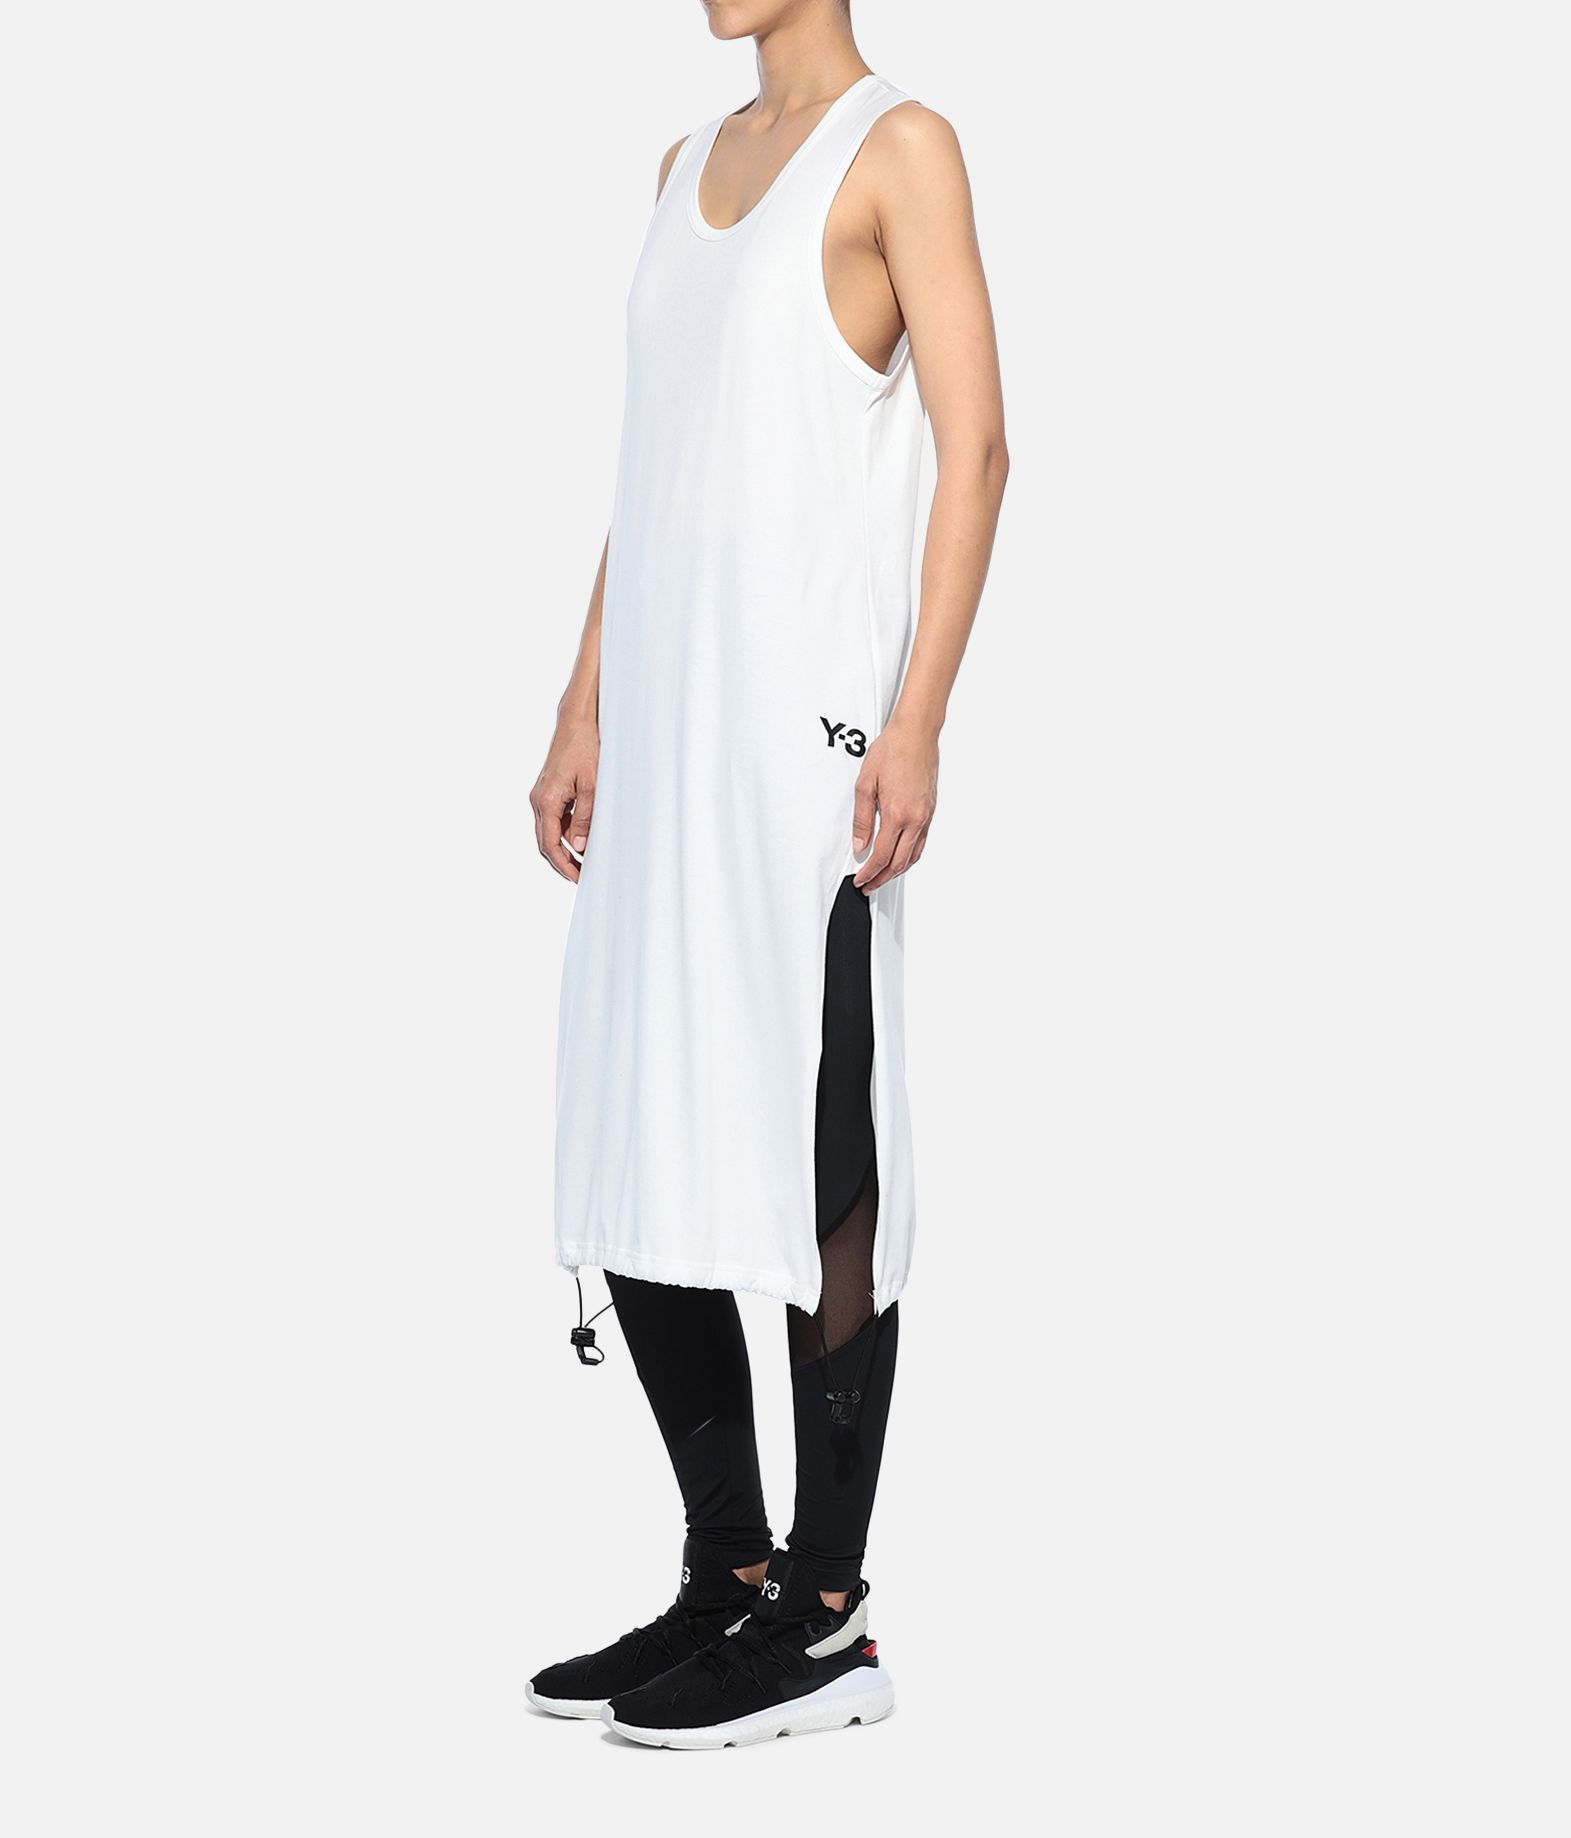 Y-3 Y-3 Drawstring Long Tank Top Sleeveless t-shirt Woman e